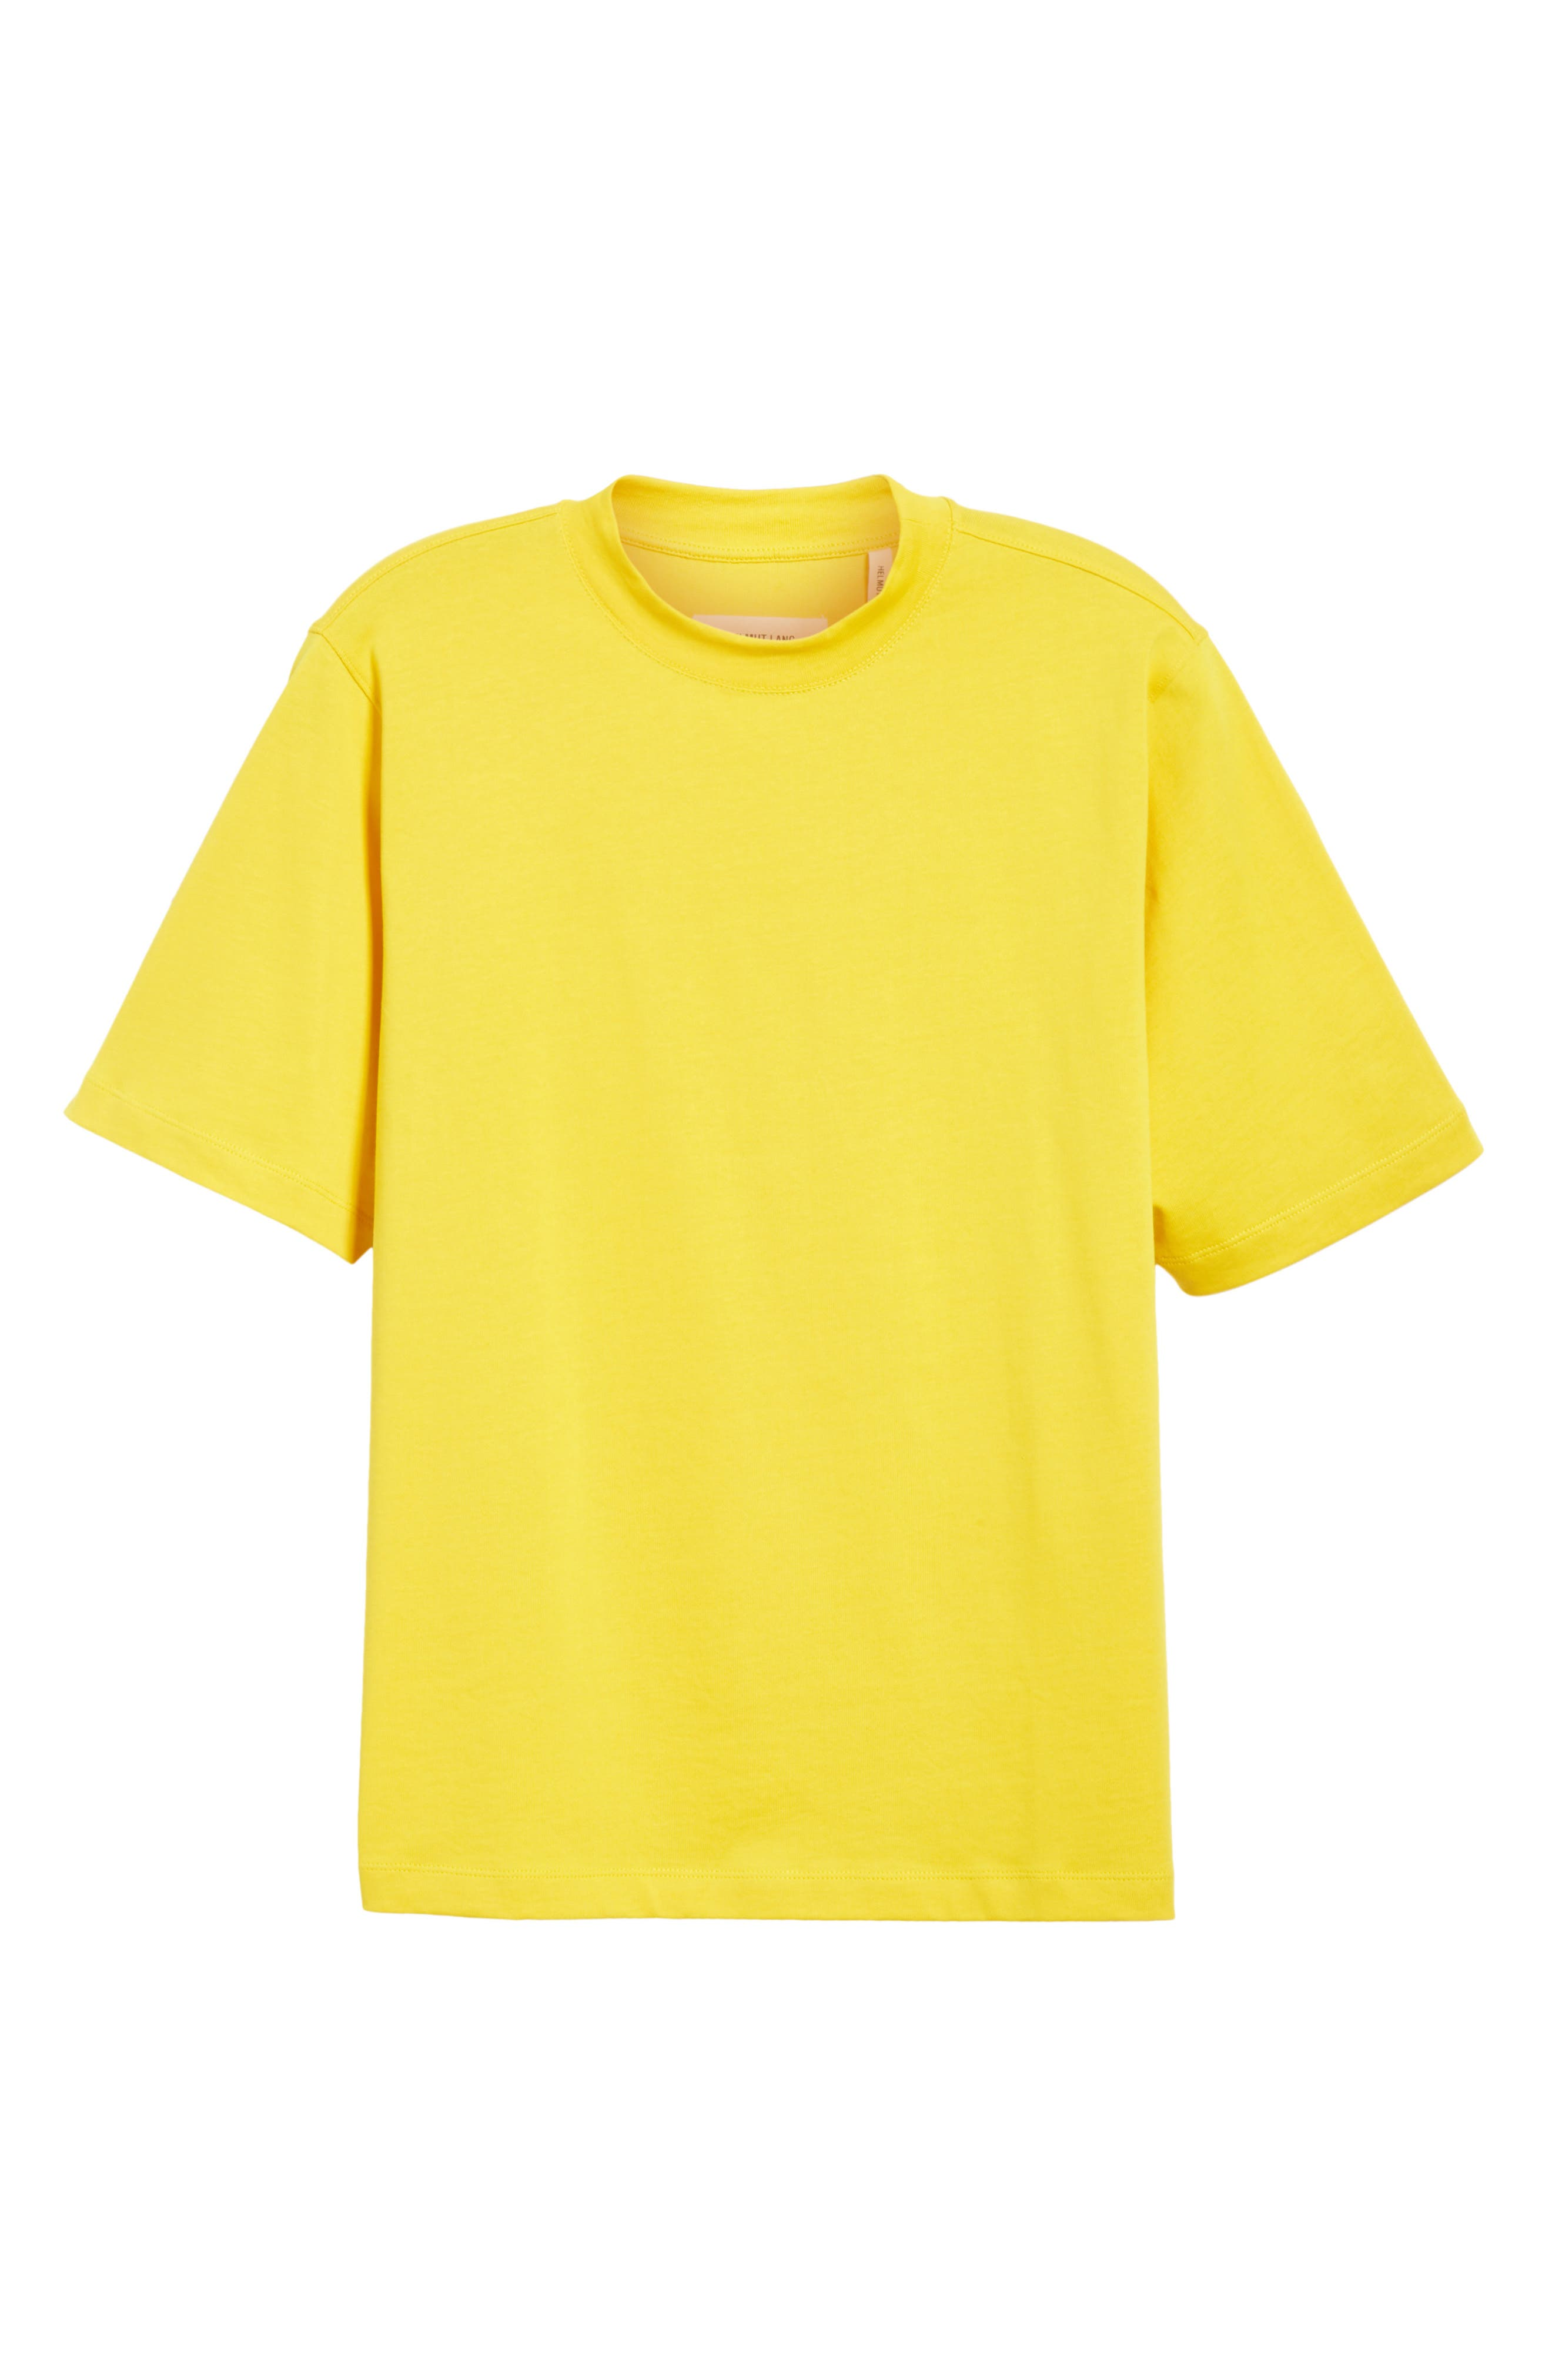 Tall T-Shirt,                             Alternate thumbnail 6, color,                             Yellow